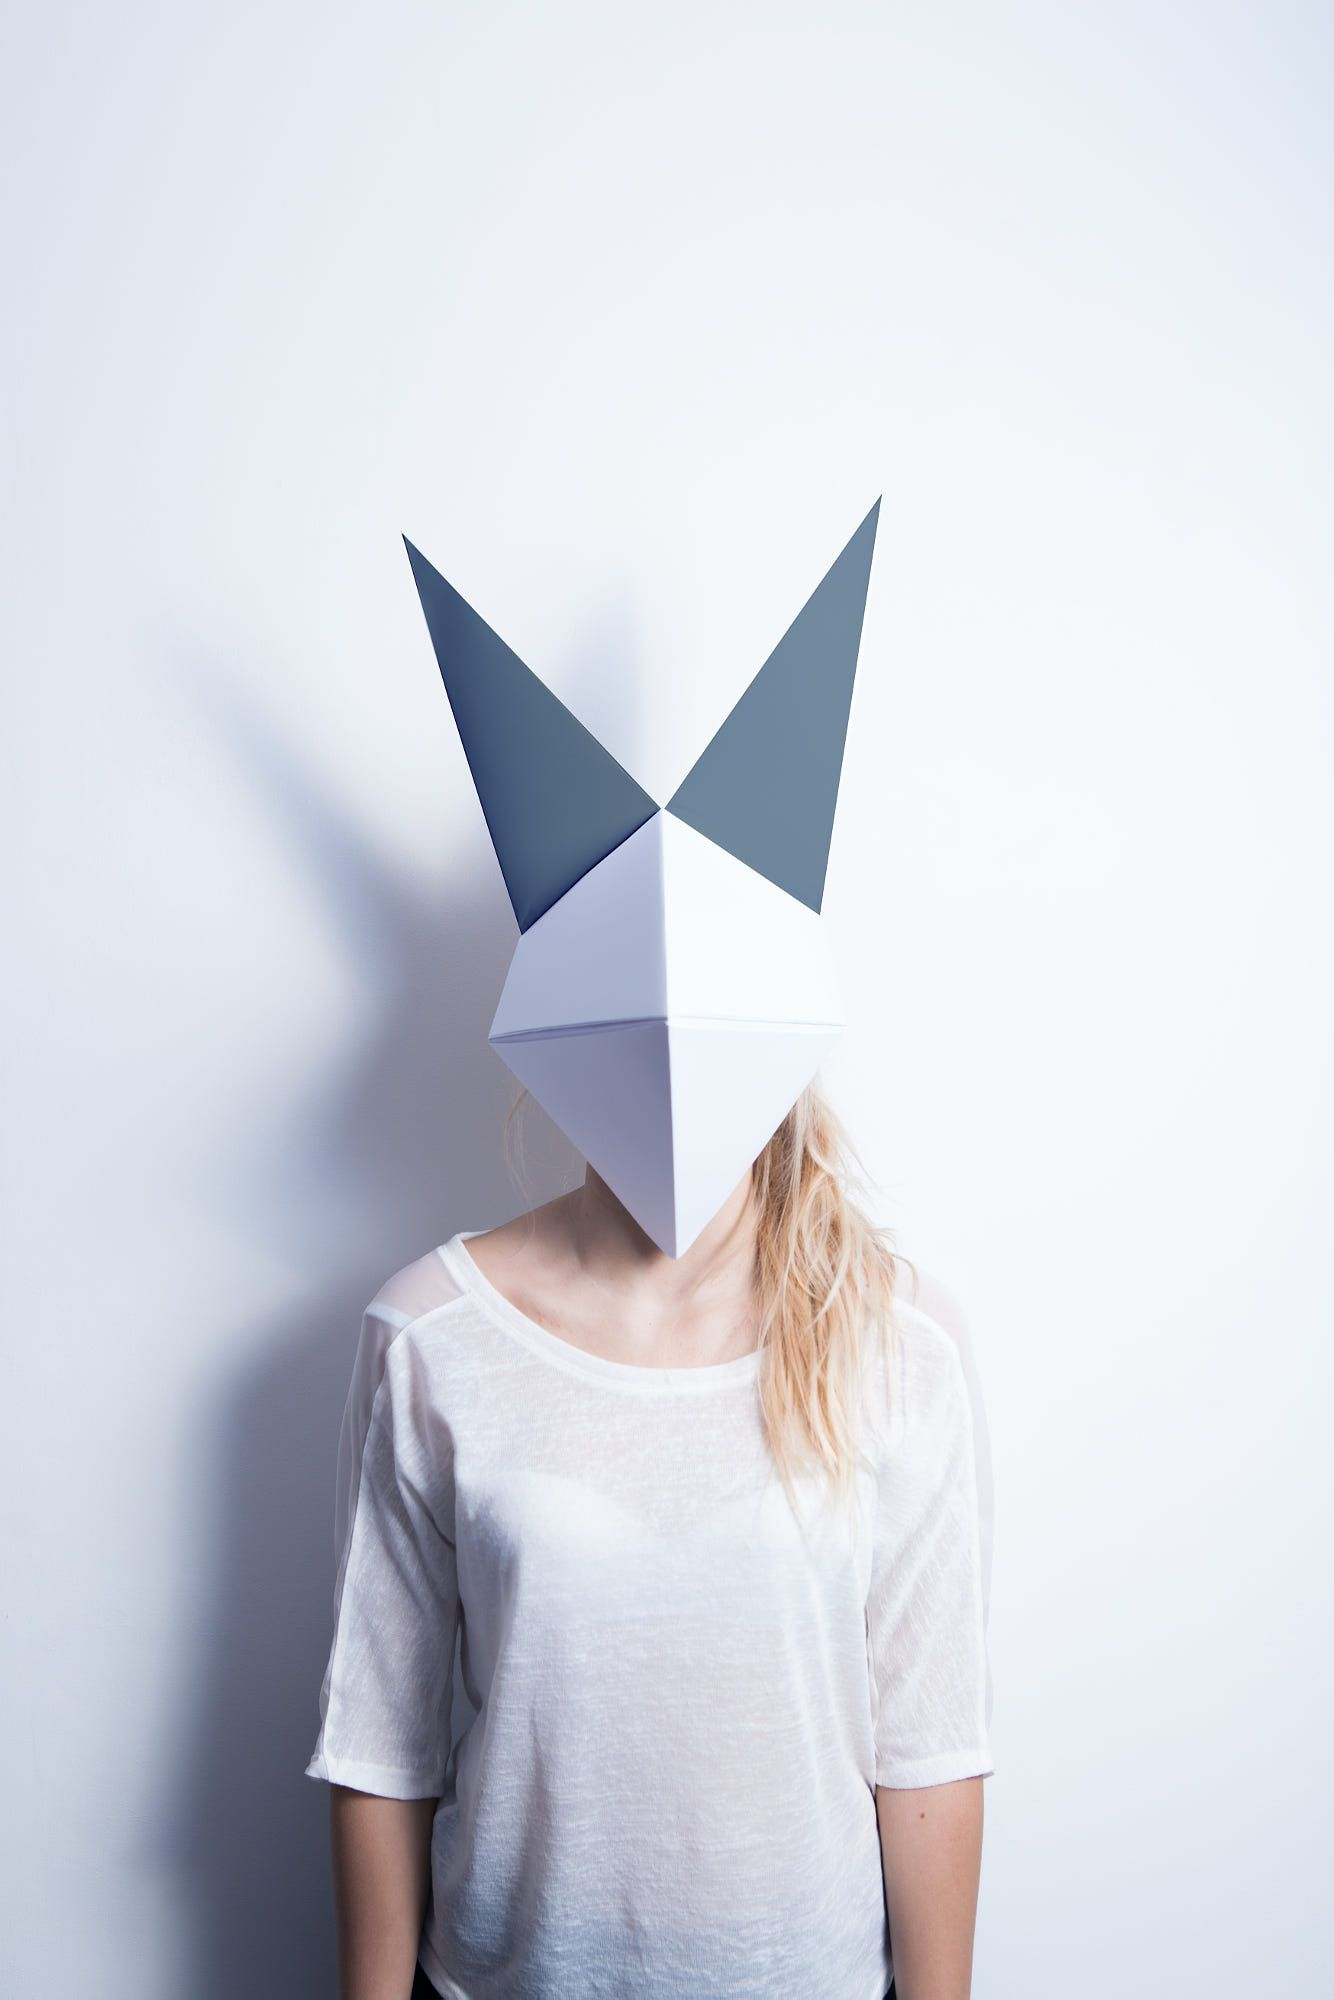 Origami fox mask image pinterest fox mask and masking origami fox mask jeuxipadfo Image collections